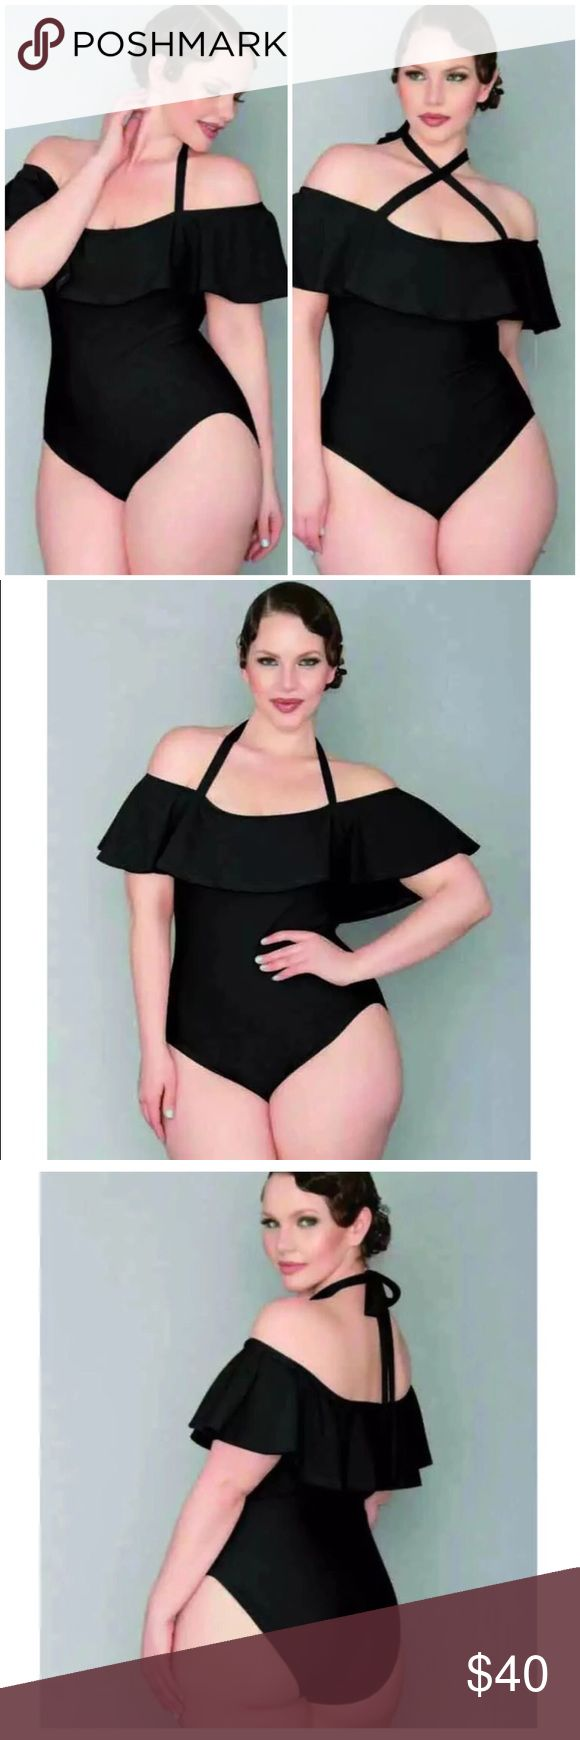 Velvet Off Shoulder Ruffle Plus Size Swimsuit Beautiful Velvet Off Shoulder Ruffle Halter Tie Plus Size Swimsuit --- Black Velour Fabric --- Padded bust --- Please refer to size chart, in general you will need to order one size up --- Price firm unless bundled --- Please feel free to ask any questions Boutique Swim One Pieces